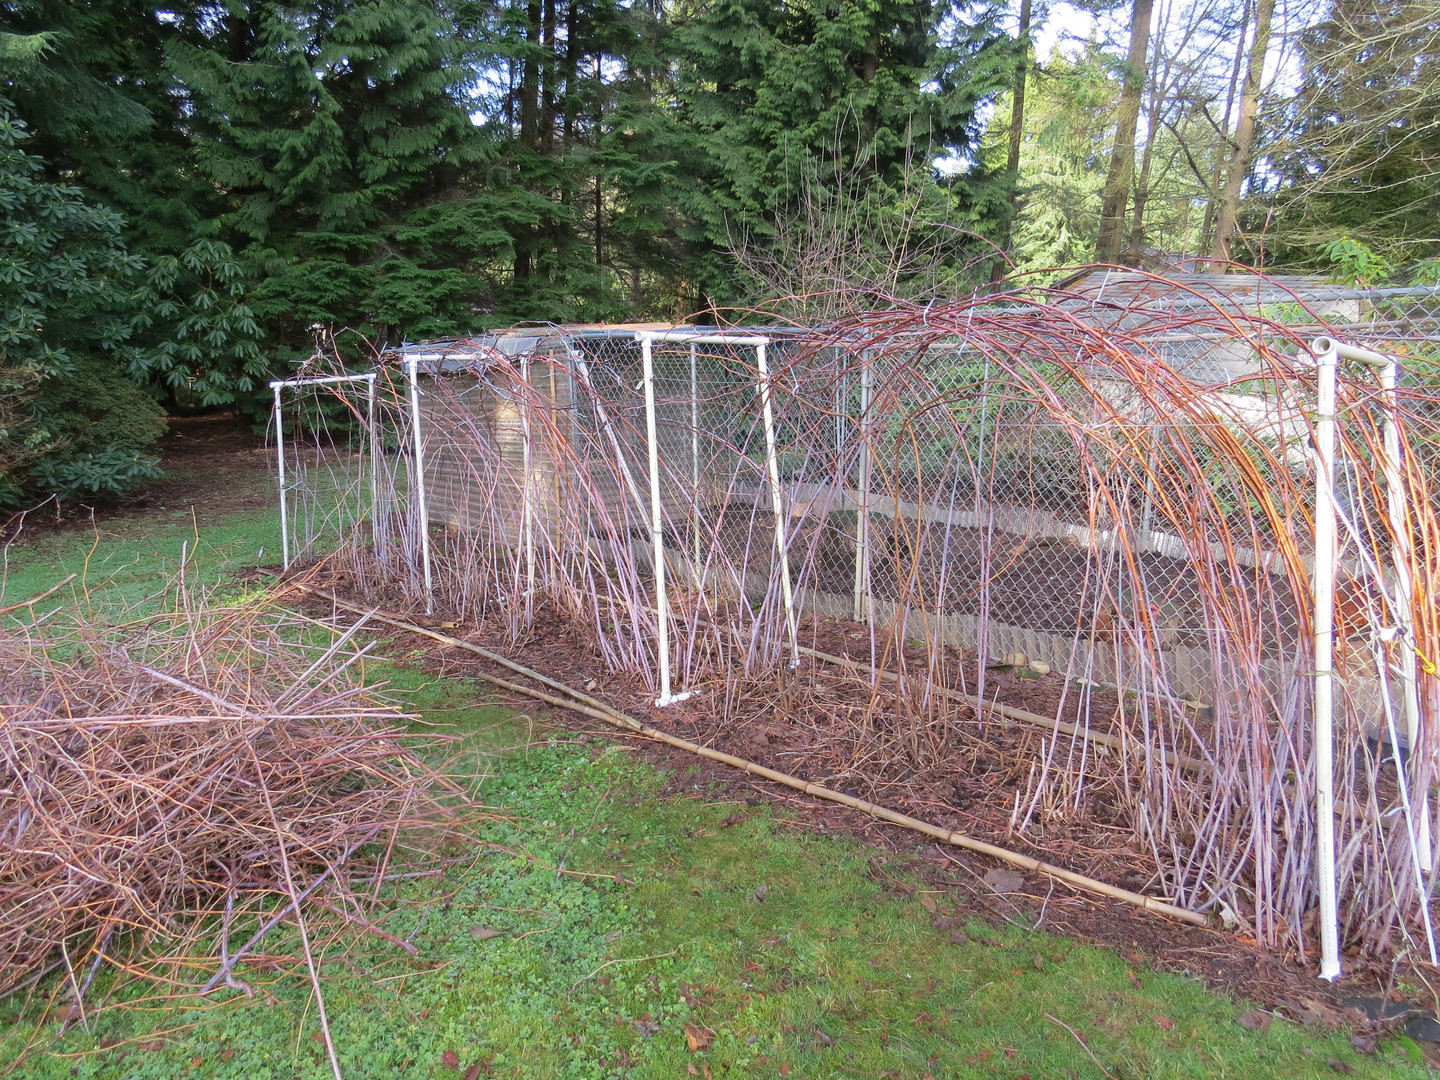 November is a great time to prune spent canes and arch this year's new growth.  Use zip ties and arch them side to side and front to back. All those leaders get heavy and need stability.